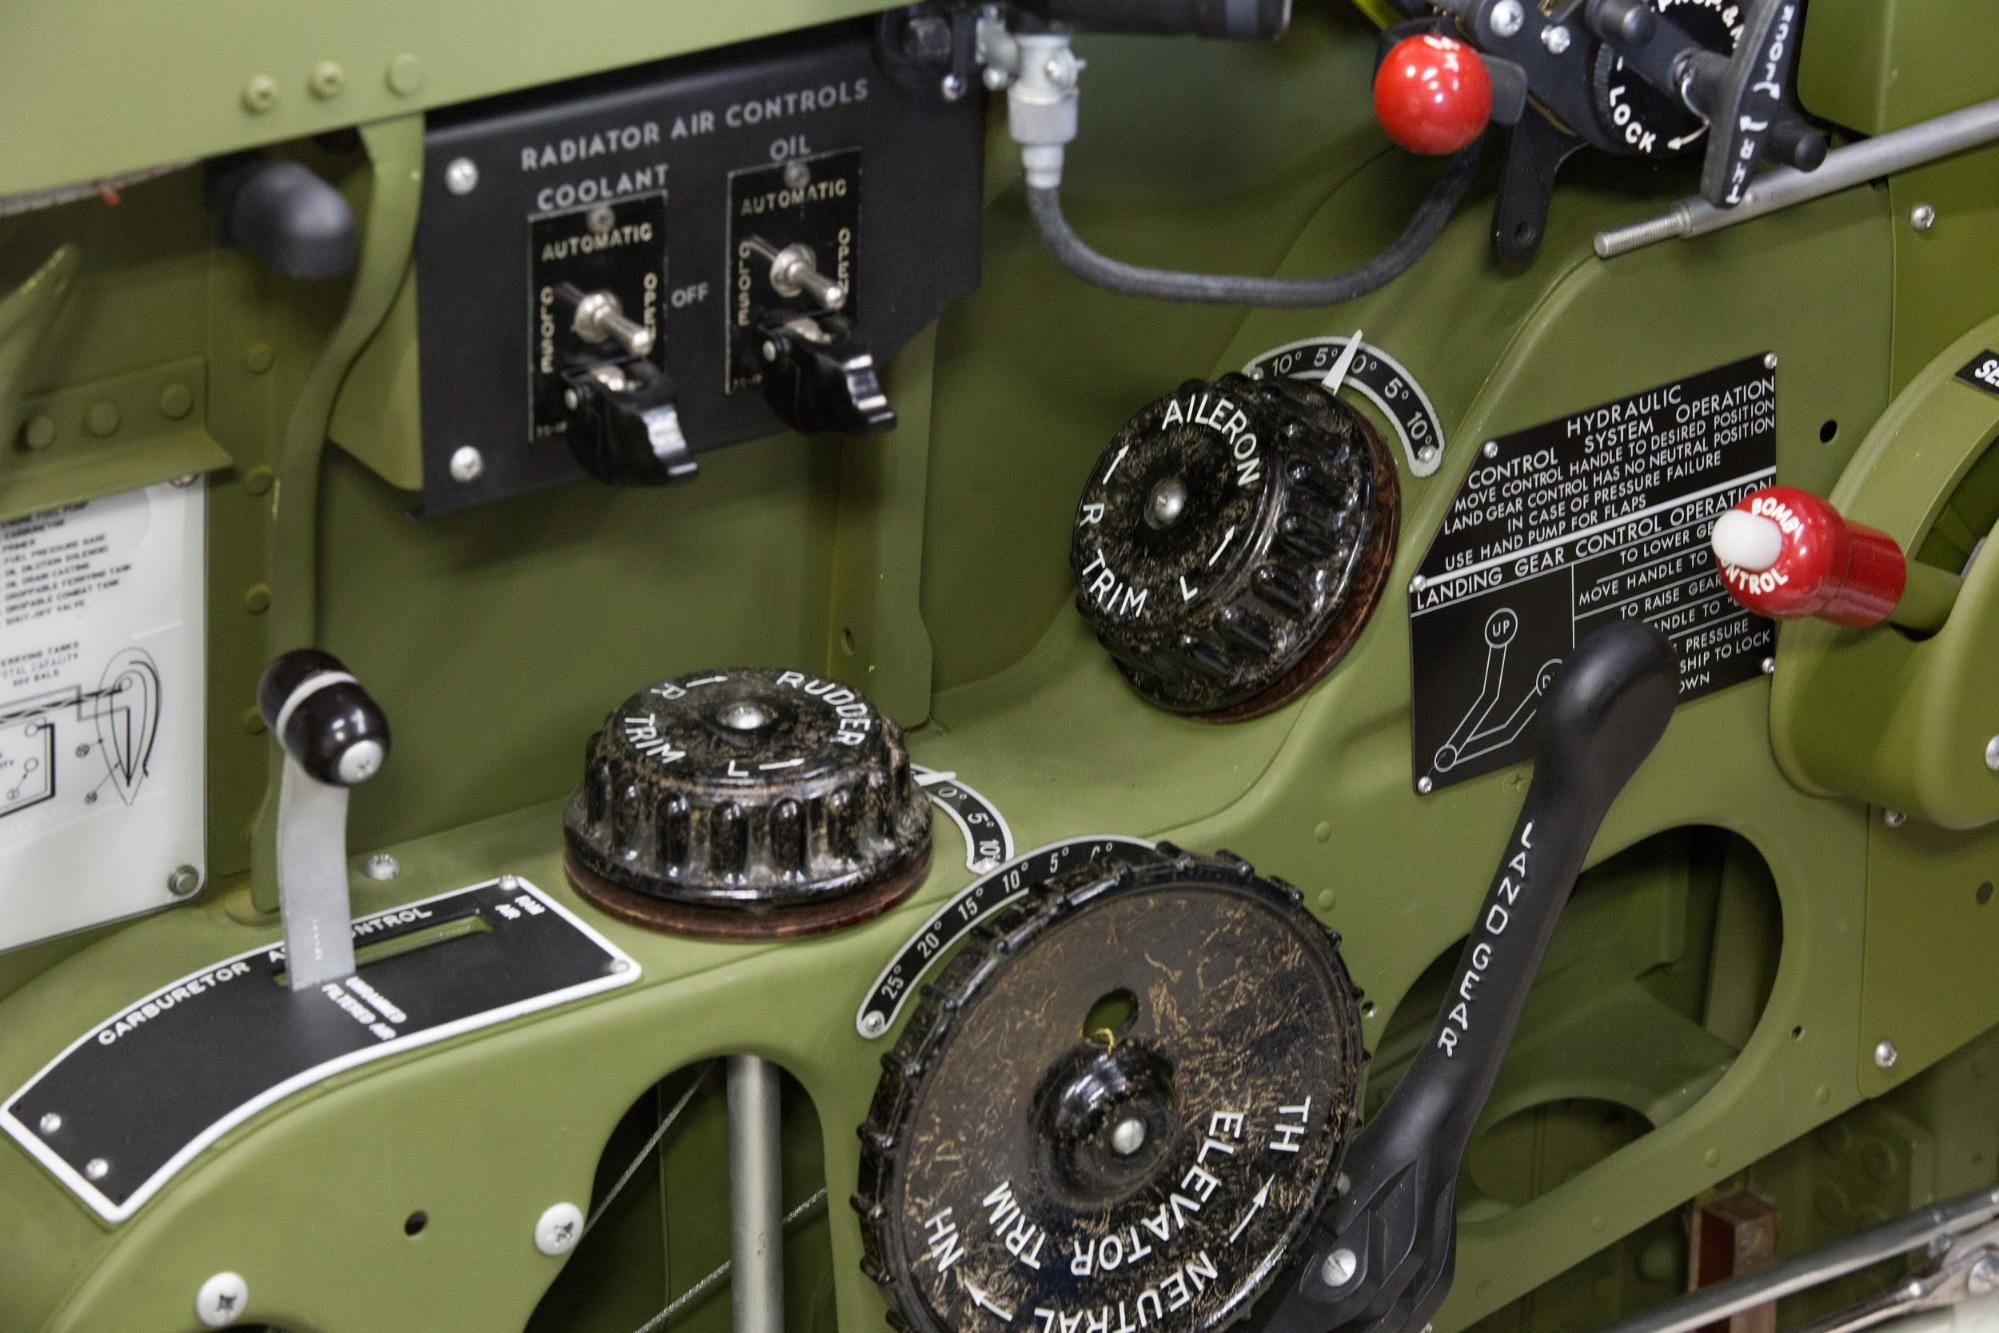 radiator air control switch box from P-51C Lope's Hope 3rd